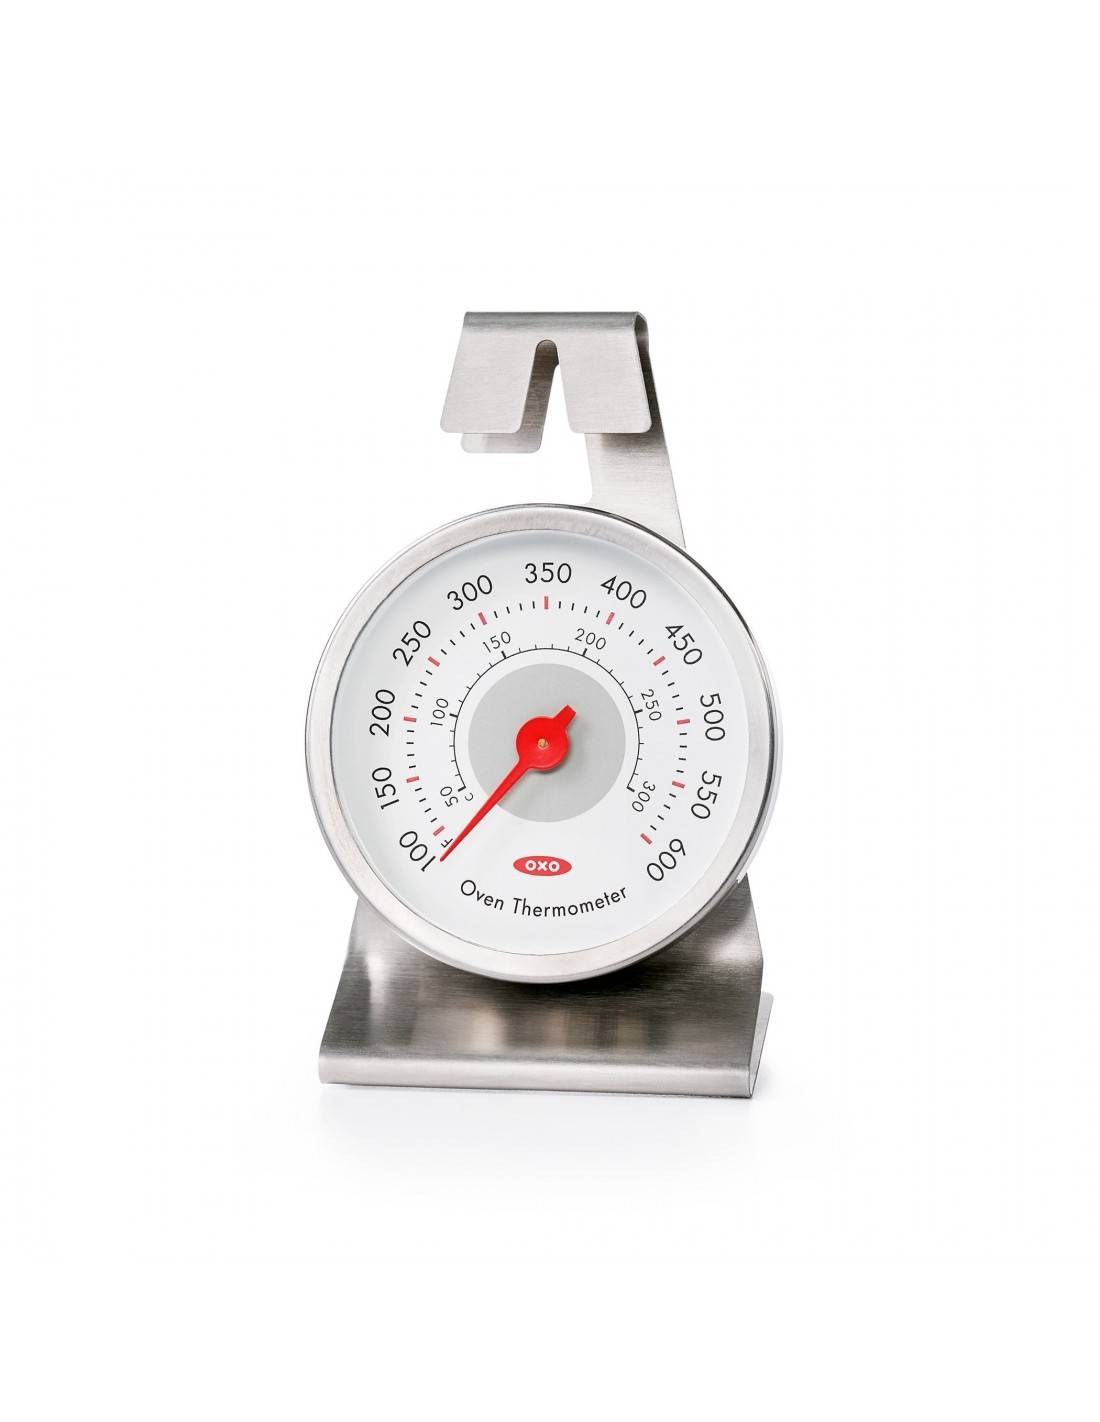 Küchenprofi Thermometer Digital Oxo Oven Thermometer